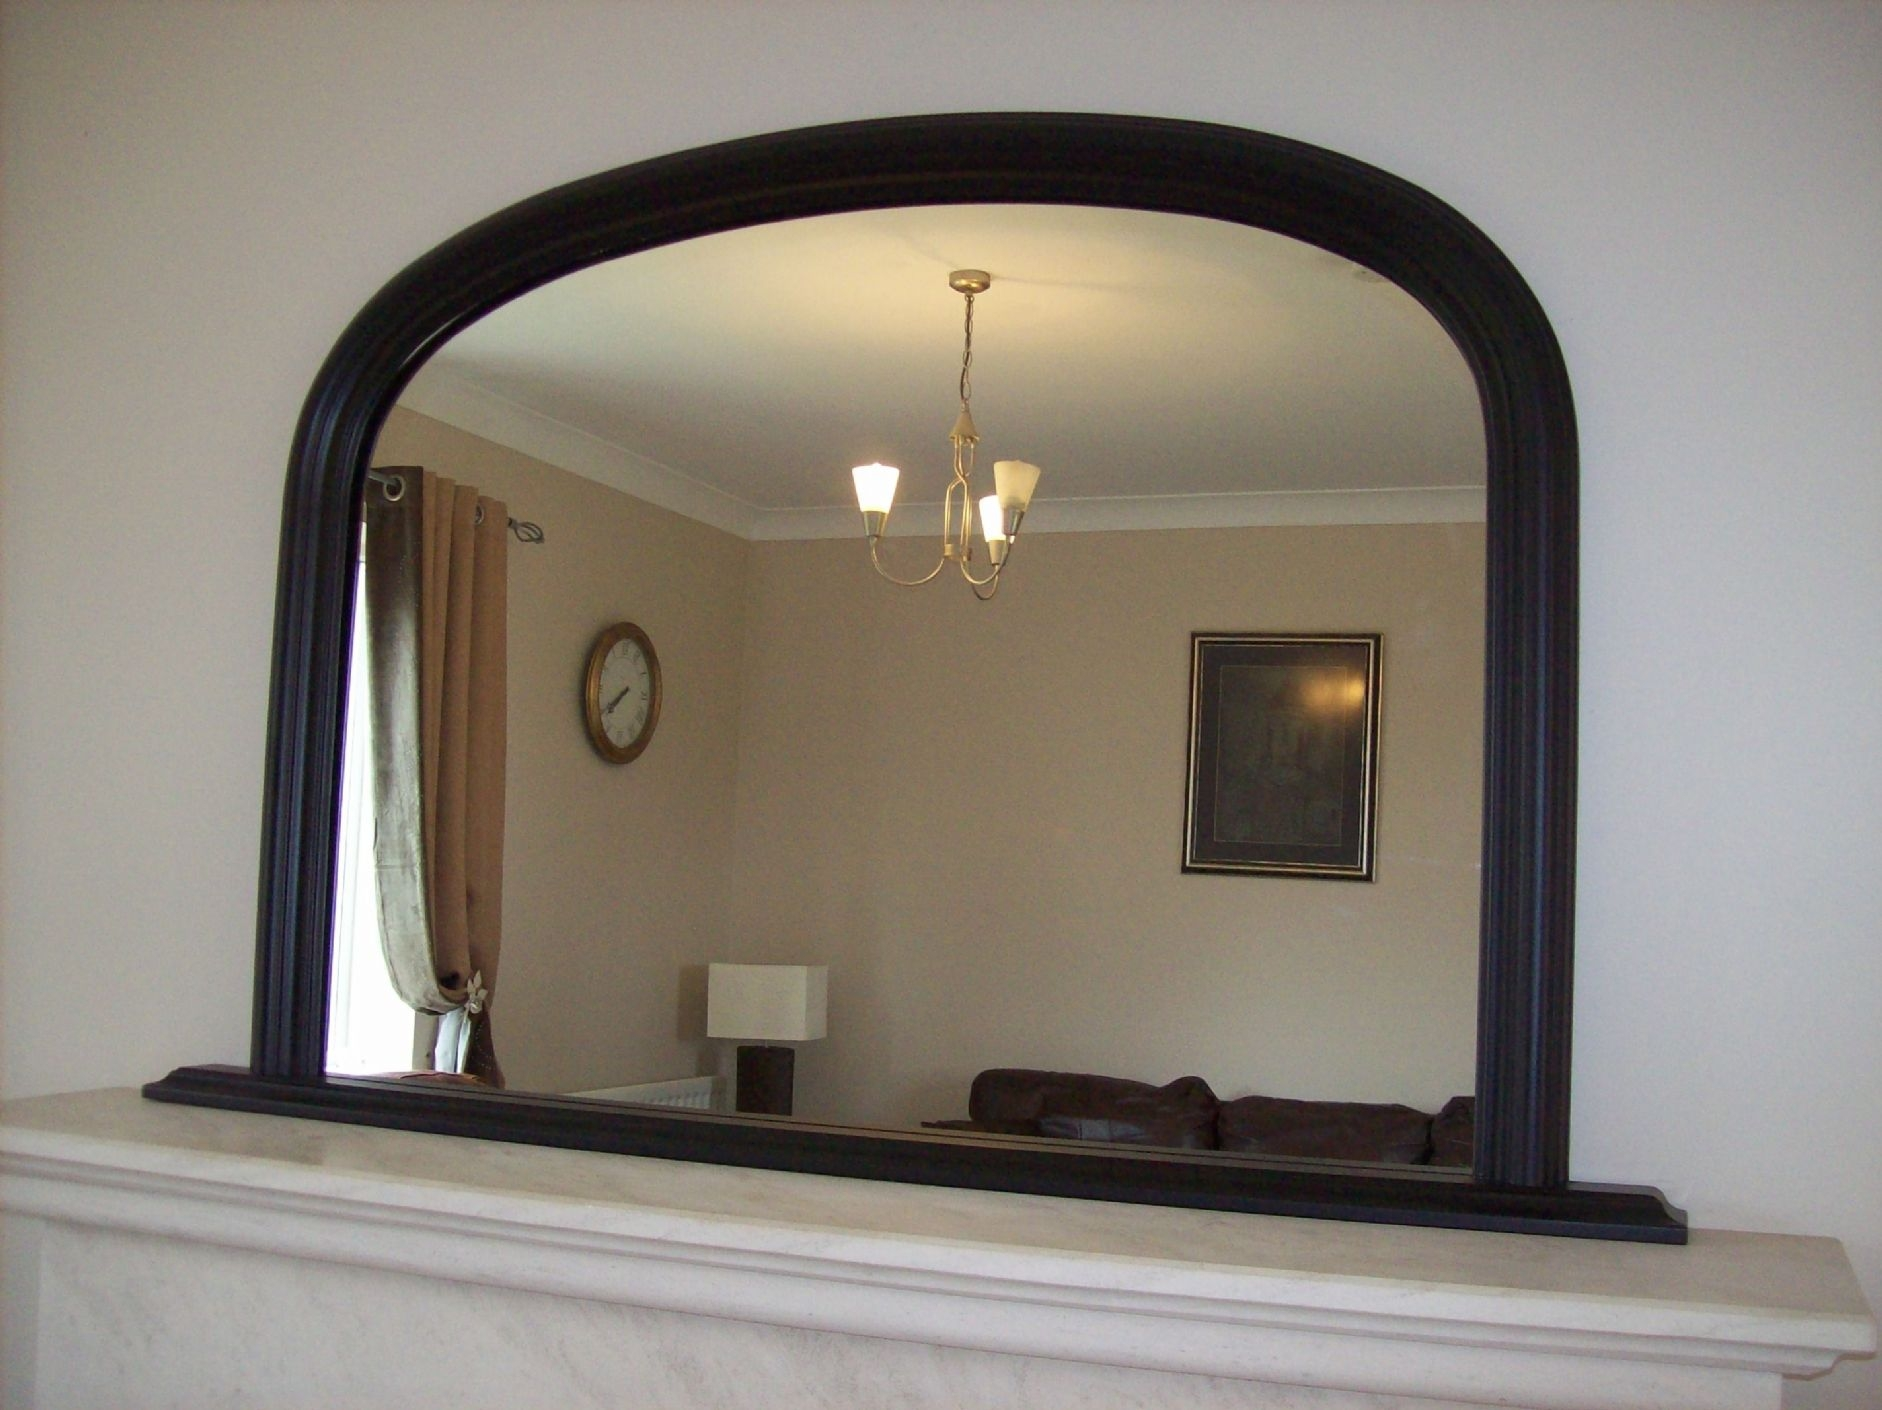 Arched Overmantle Mirror Intended For Overmantle Mirrors (Image 2 of 15)